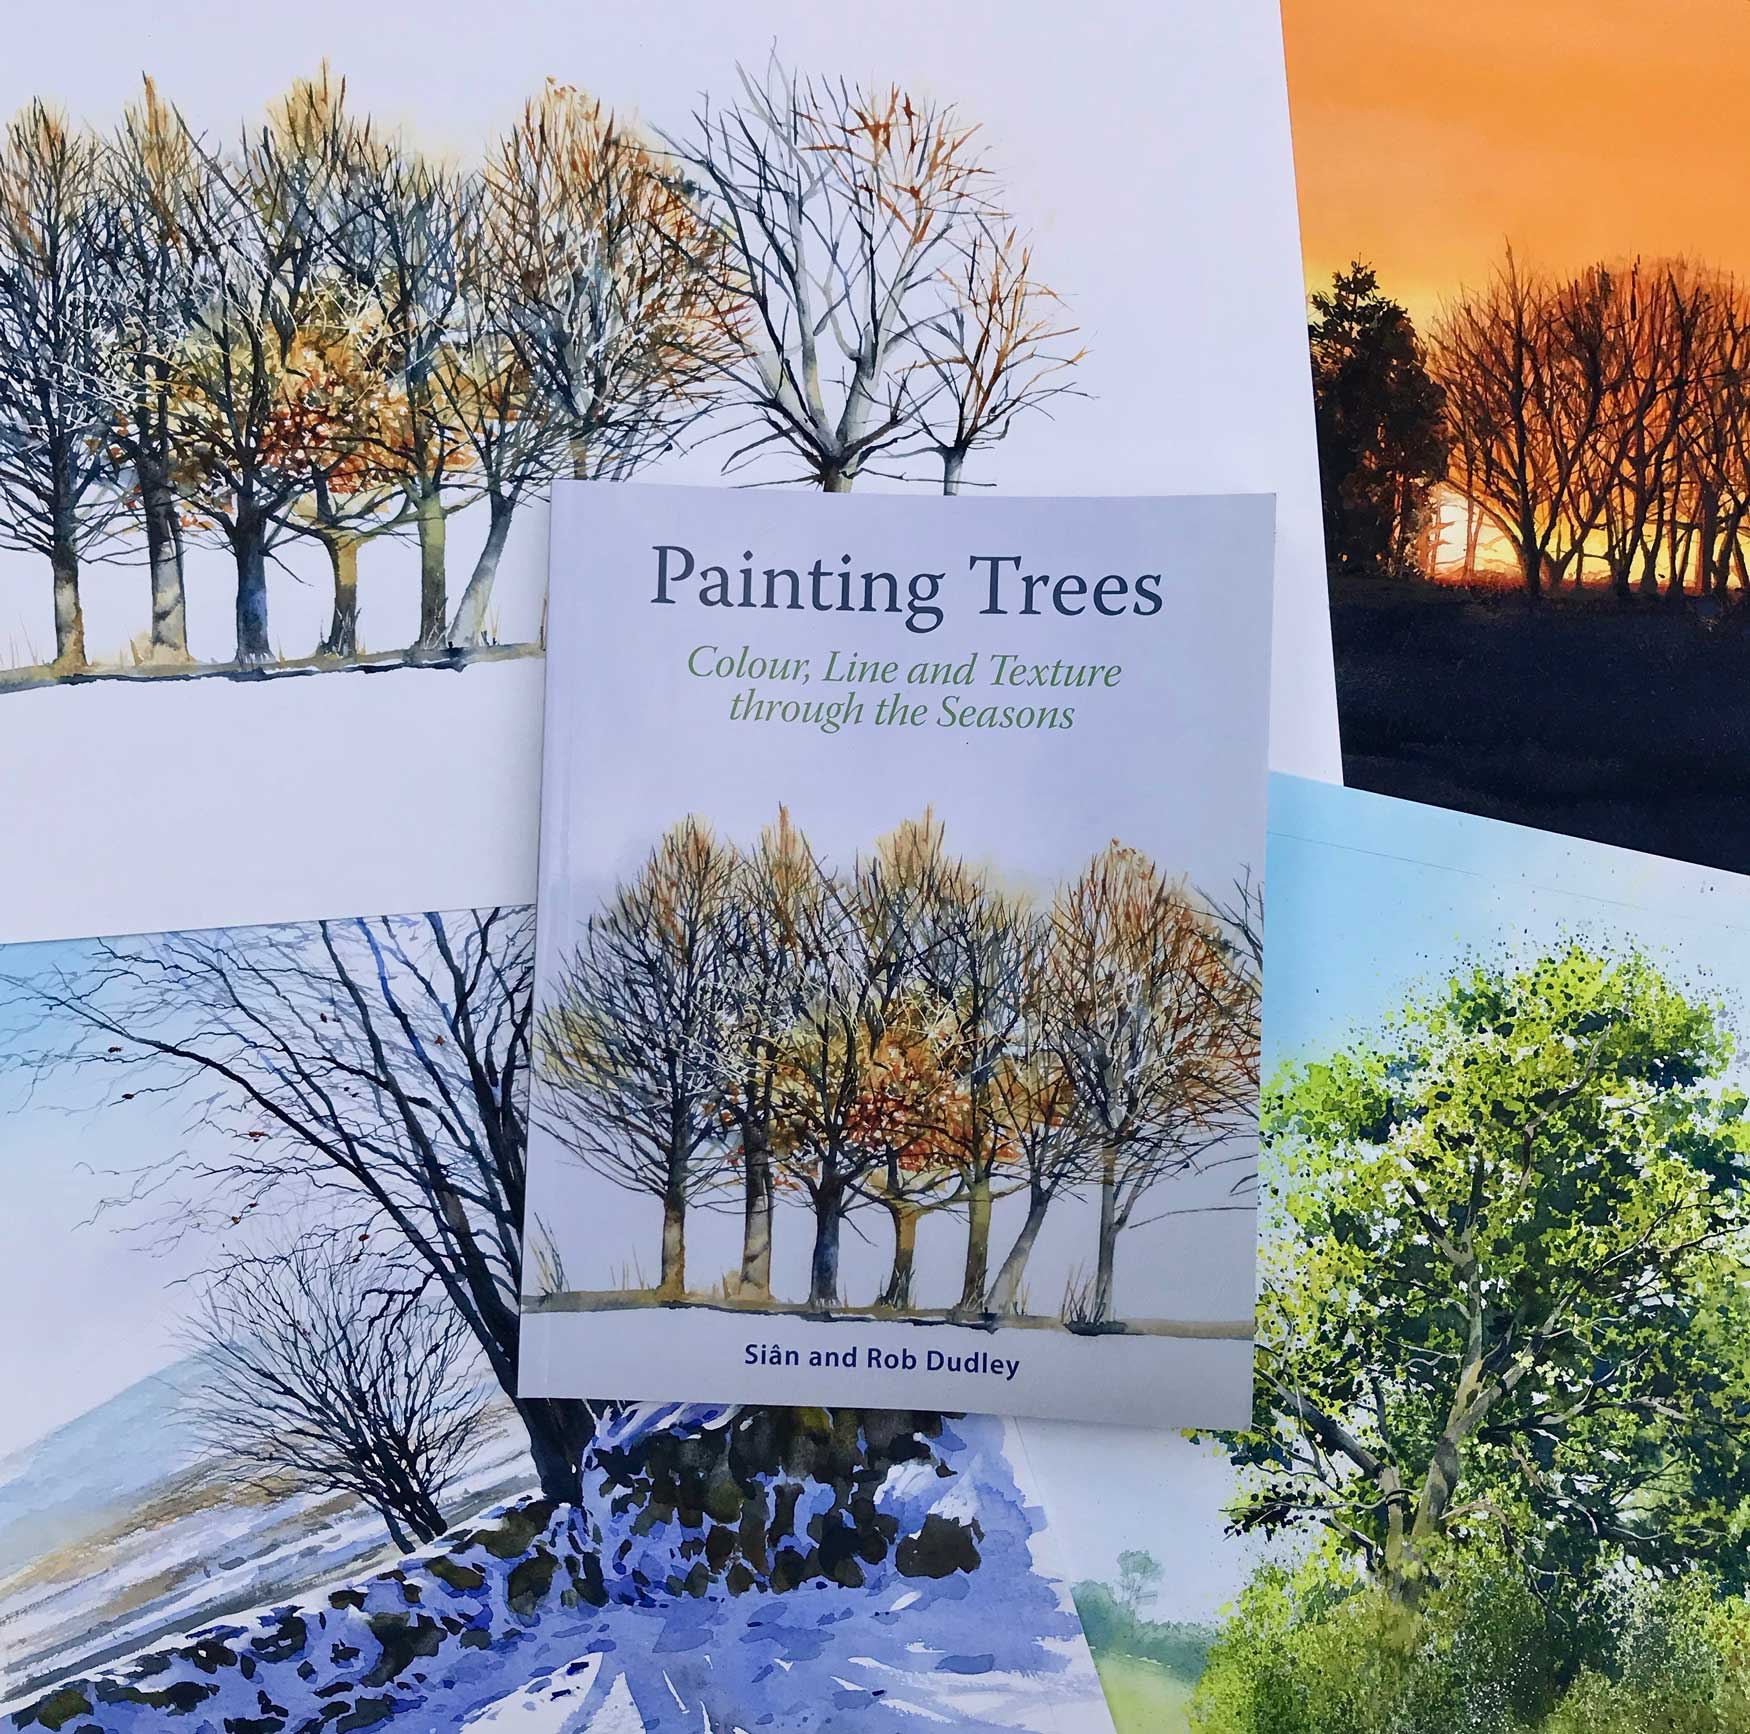 'Painting Trees' with some of the original images